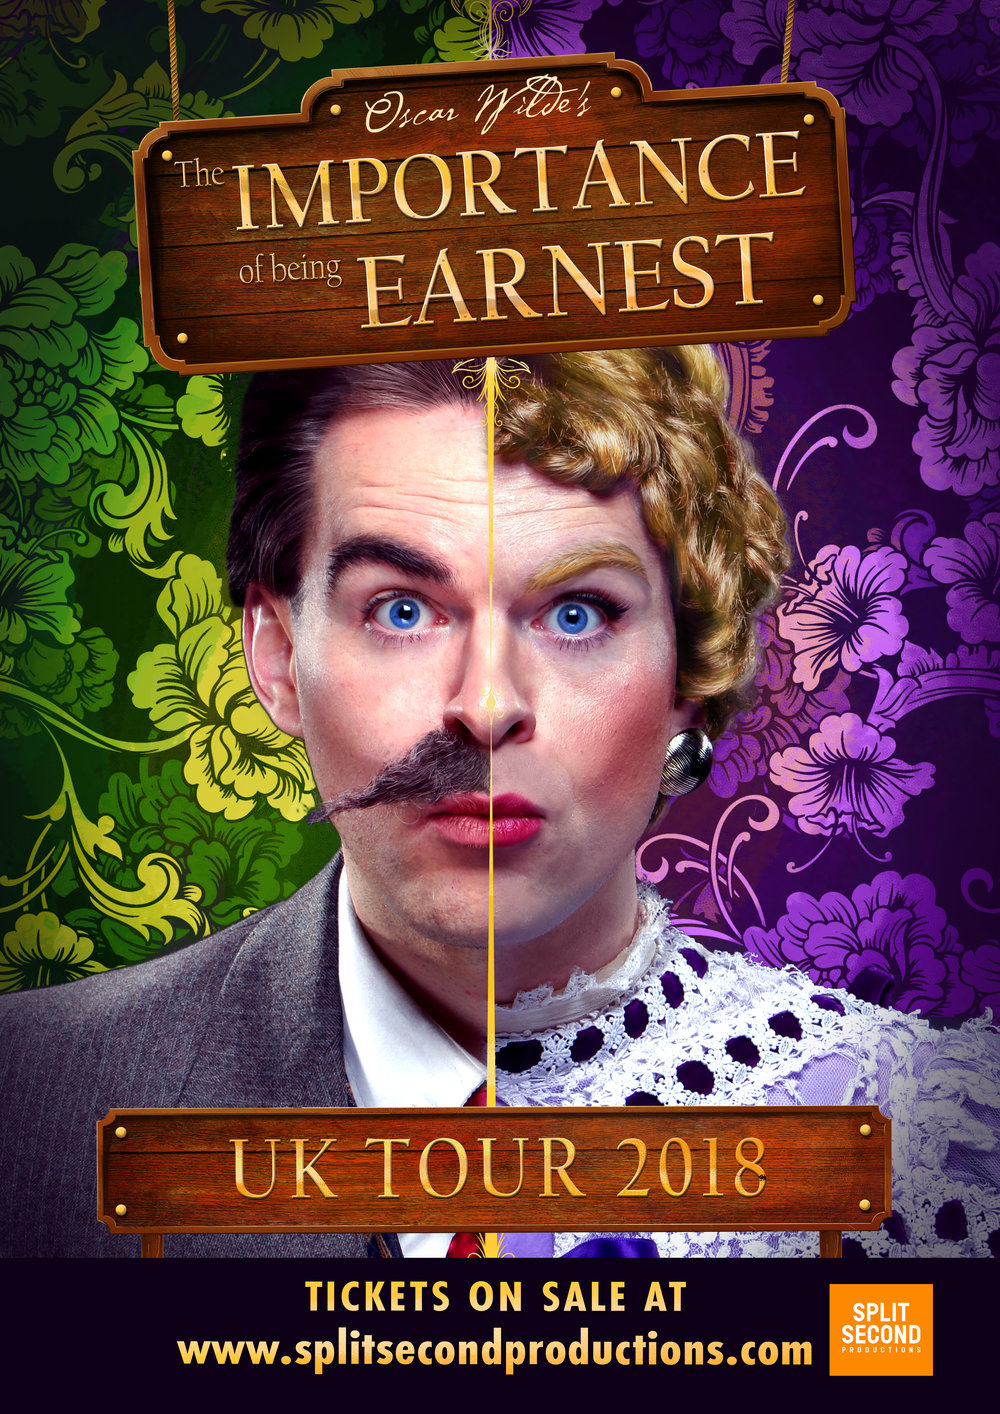 The Importance of being Earnest 22 uk tour.jpg